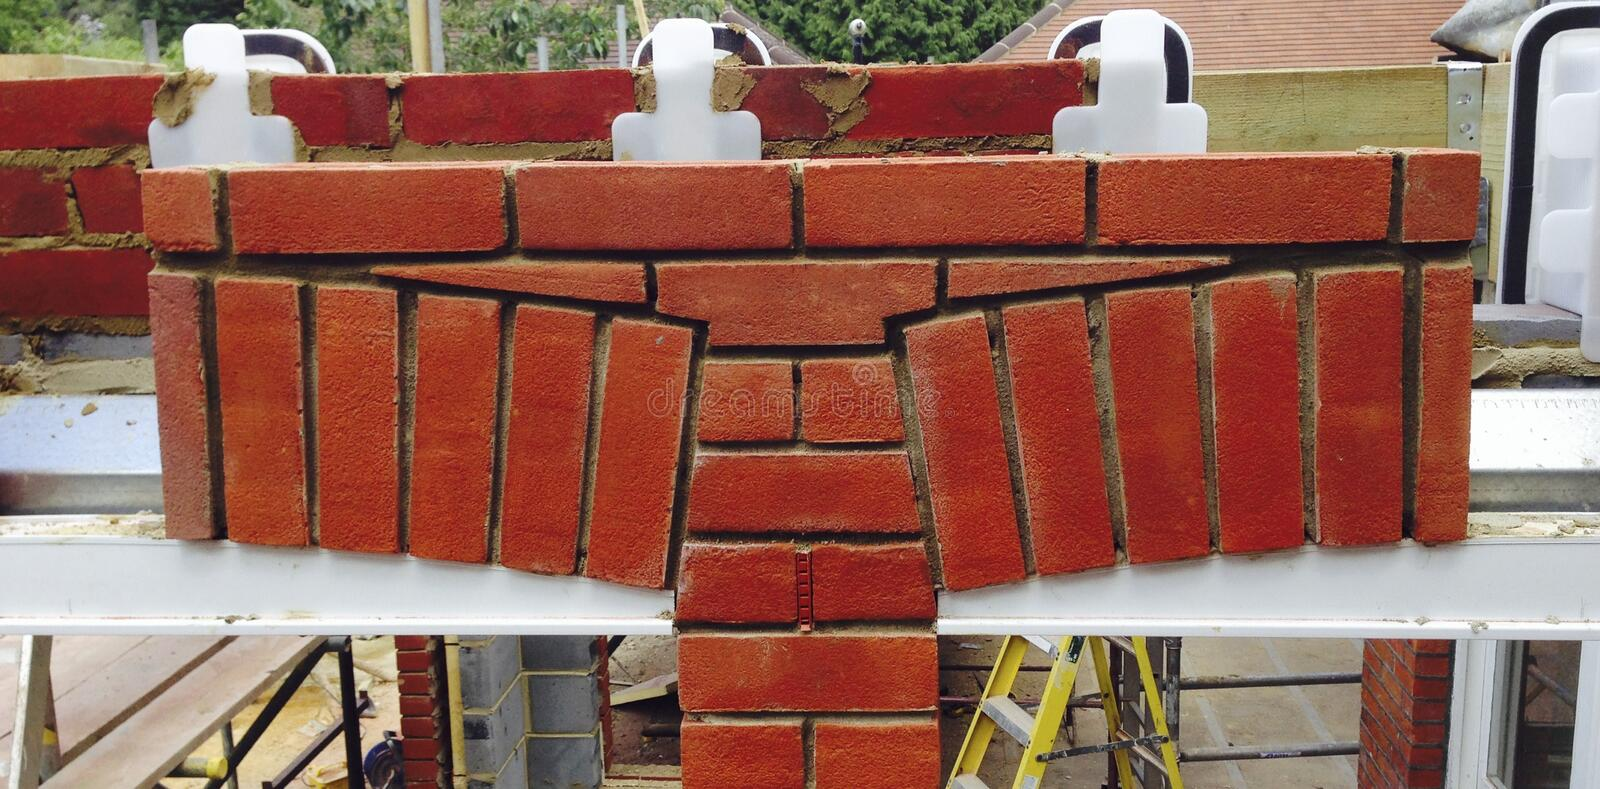 Brickwork arch royalty free stock images